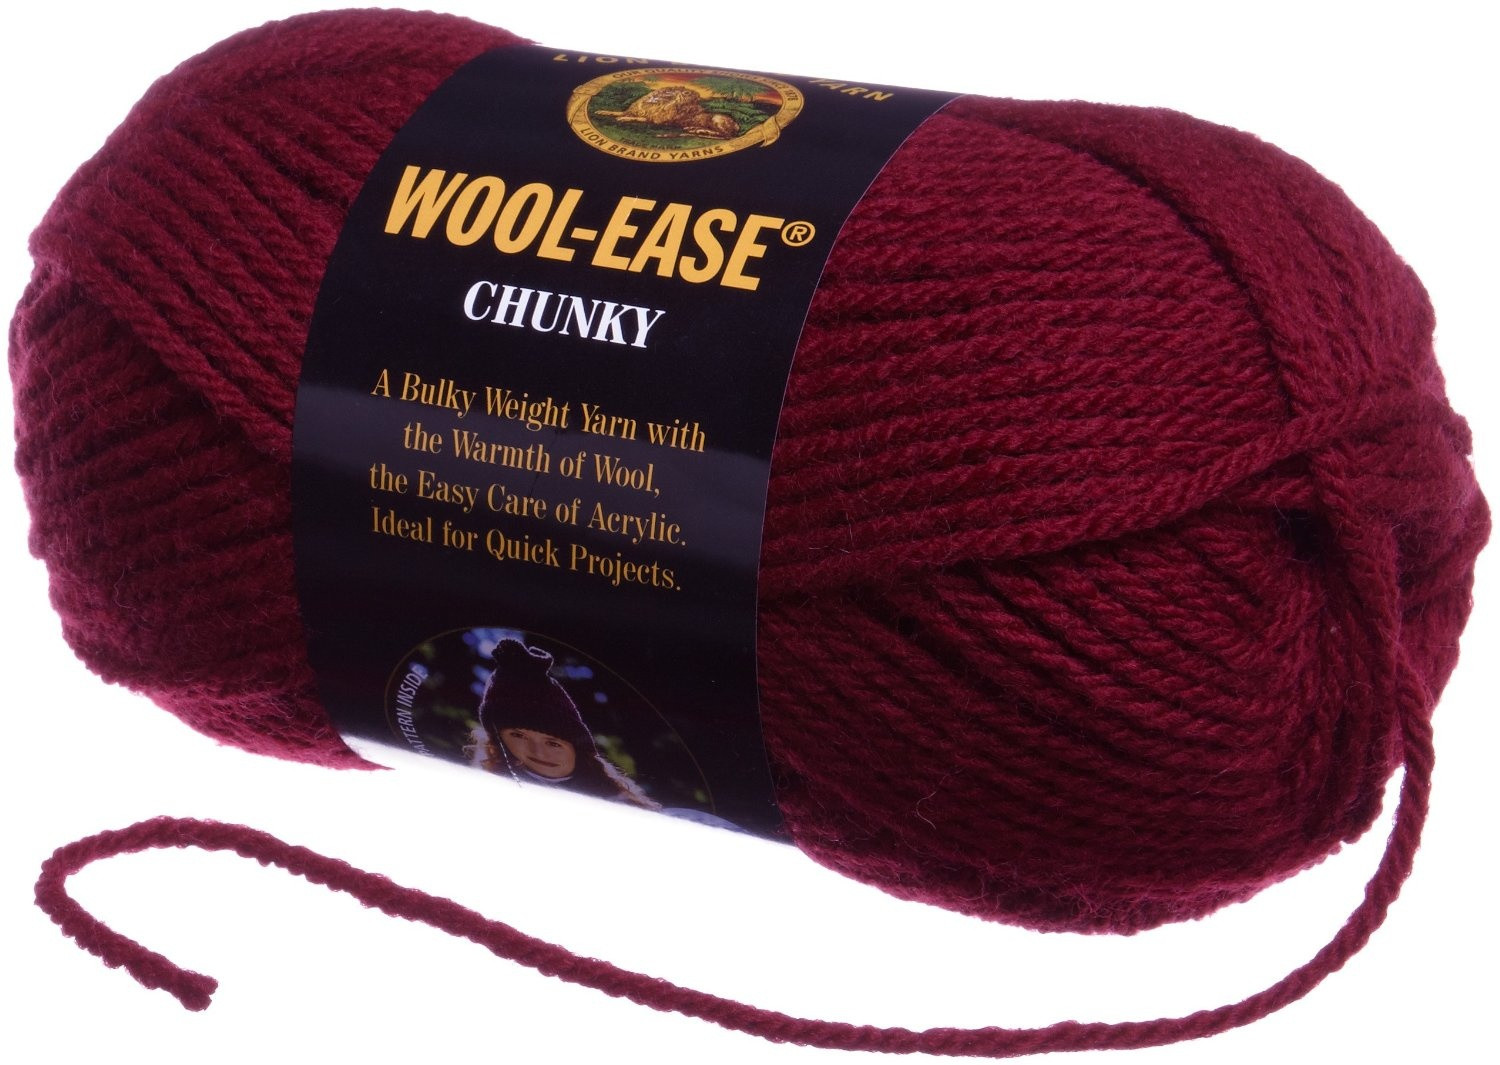 Lion Brand Wool New Lion Brand Yarn 630 153 Wool Ease Chunky Yarn Black Best Of Fresh 40 Pictures Lion Brand Wool